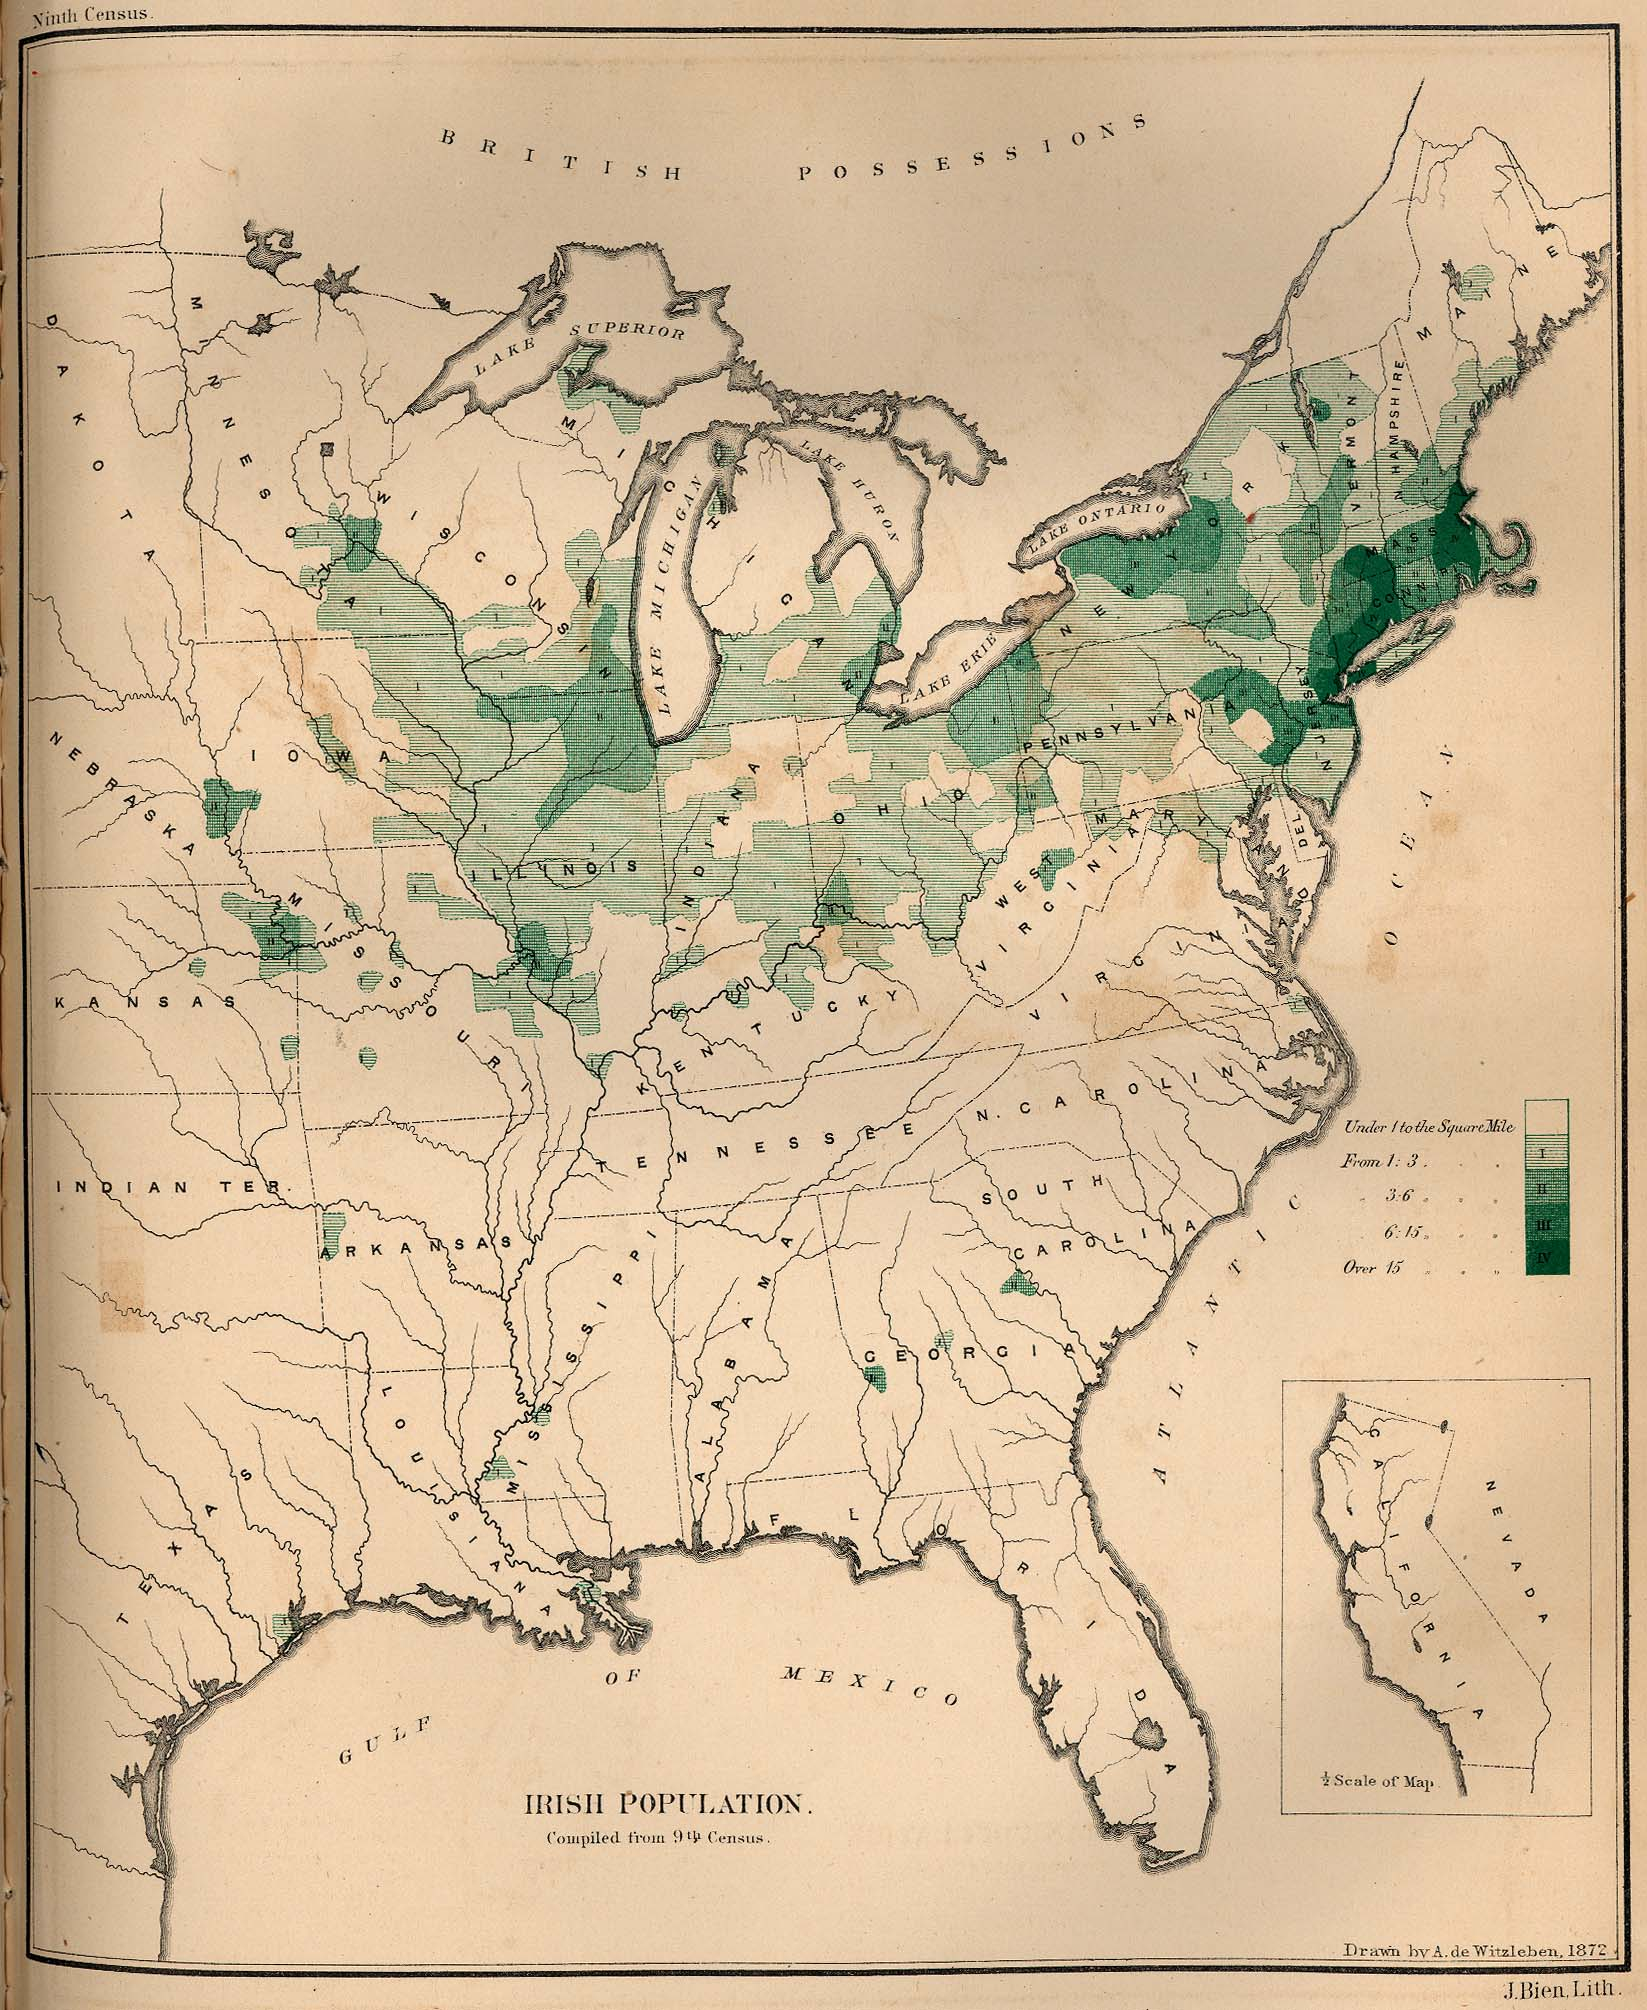 Irish population in 1872, map, drawn by A. de Witzleben, J. Bien lith. New York; source: The Statistics of the Population of the United States, Compiled from the Original Returns of the Ninth Census, 1872; University of Texas Library, Perry-Castañeda Library, Map Collection, http://www.lib.utexas.edu/maps/historical/irish_pop_1872.jpg.